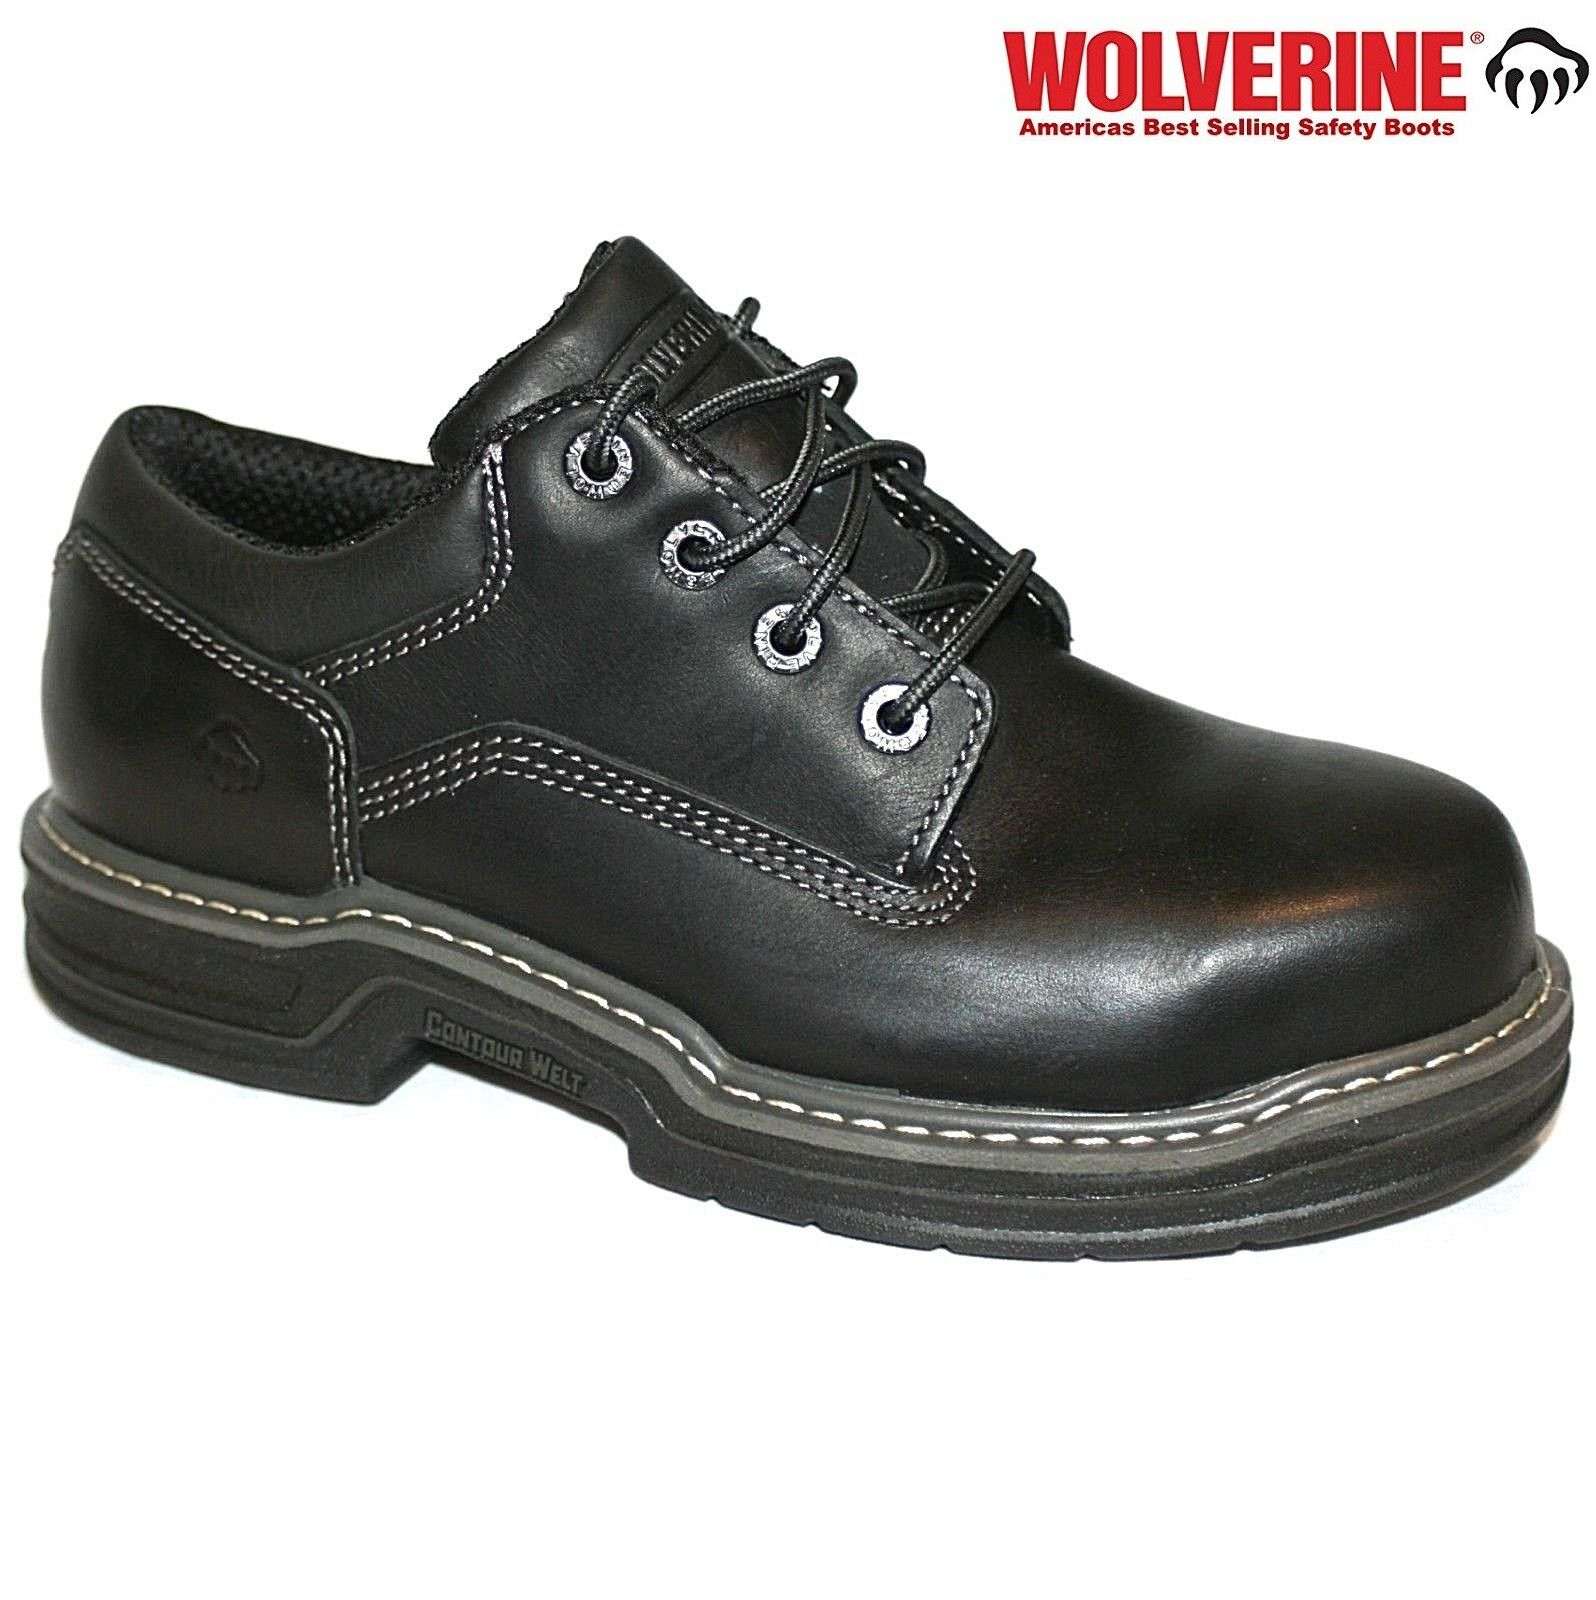 Wolverine Men's Raider Oxford Contour Welt Steel Toe Work Boots Black shoes Size